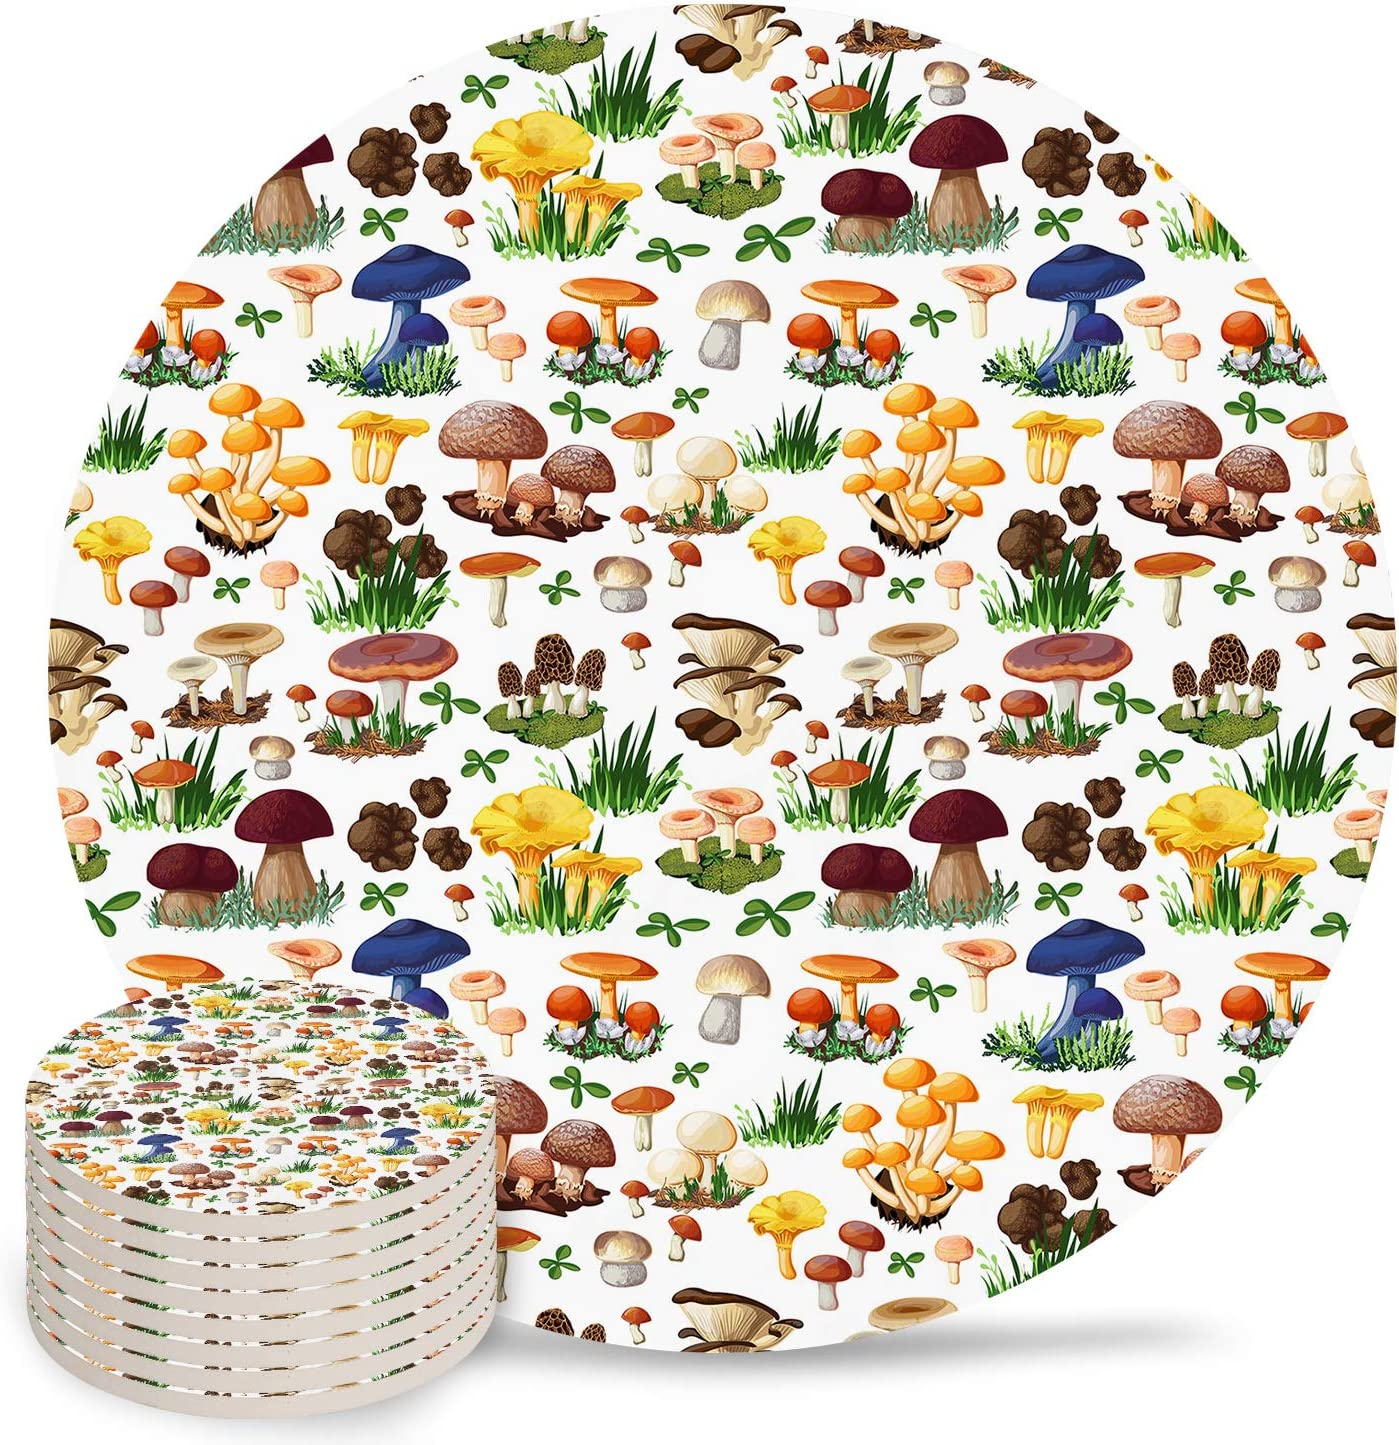 Absorbent Ceramic Drink Coasters for Table Decor, Cartoon Plant Mushroom Child Heat-Proof Cups Place Mats for Wine Glasses Cups & Mugs, 8 PCS Set Round Coaster for Home or Bar Use